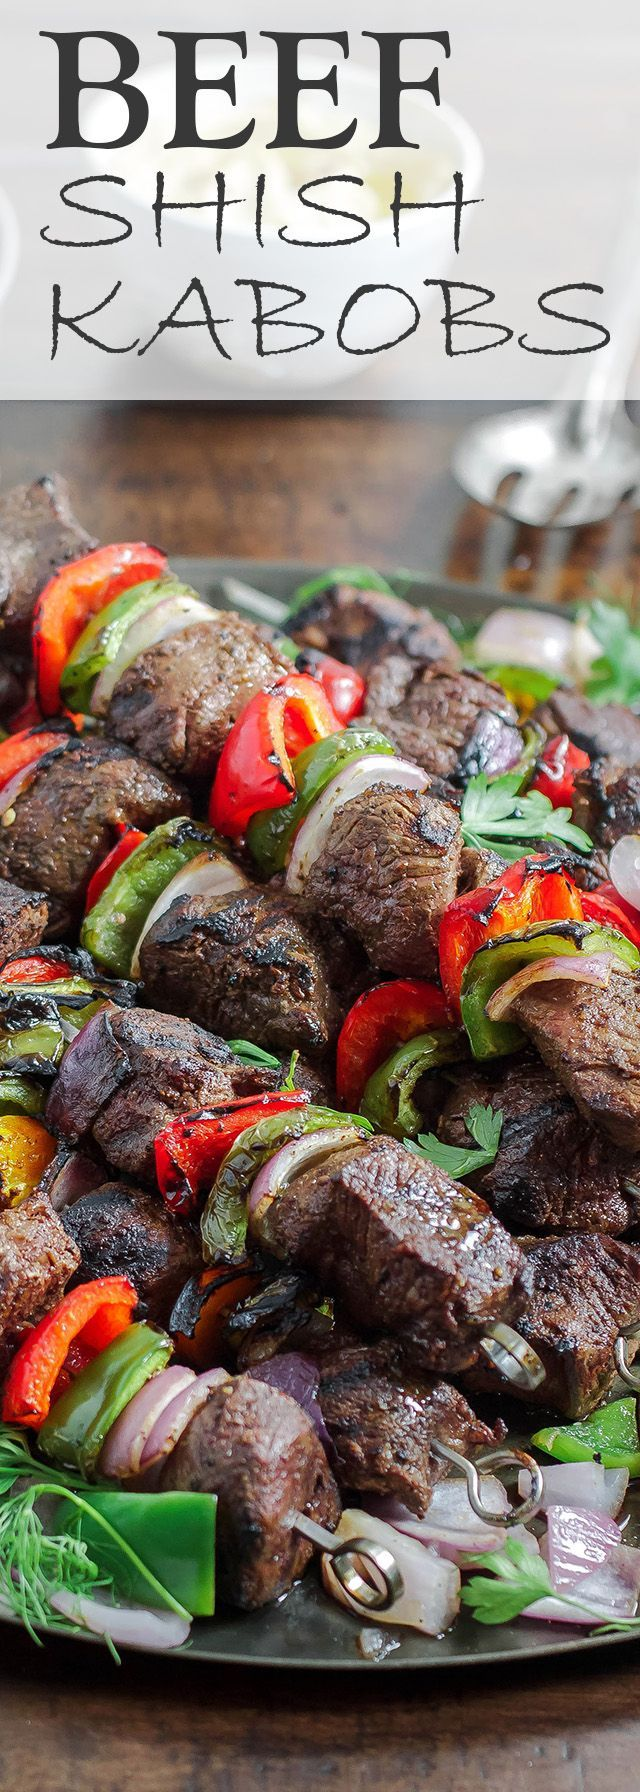 The best shish kabob recipe…Plus everything you need to know about what makes the perfect beef kabobs! See the tips and step-by-step tutorial.   Souvlaki, brochette, satay, or shish kabob…if there is